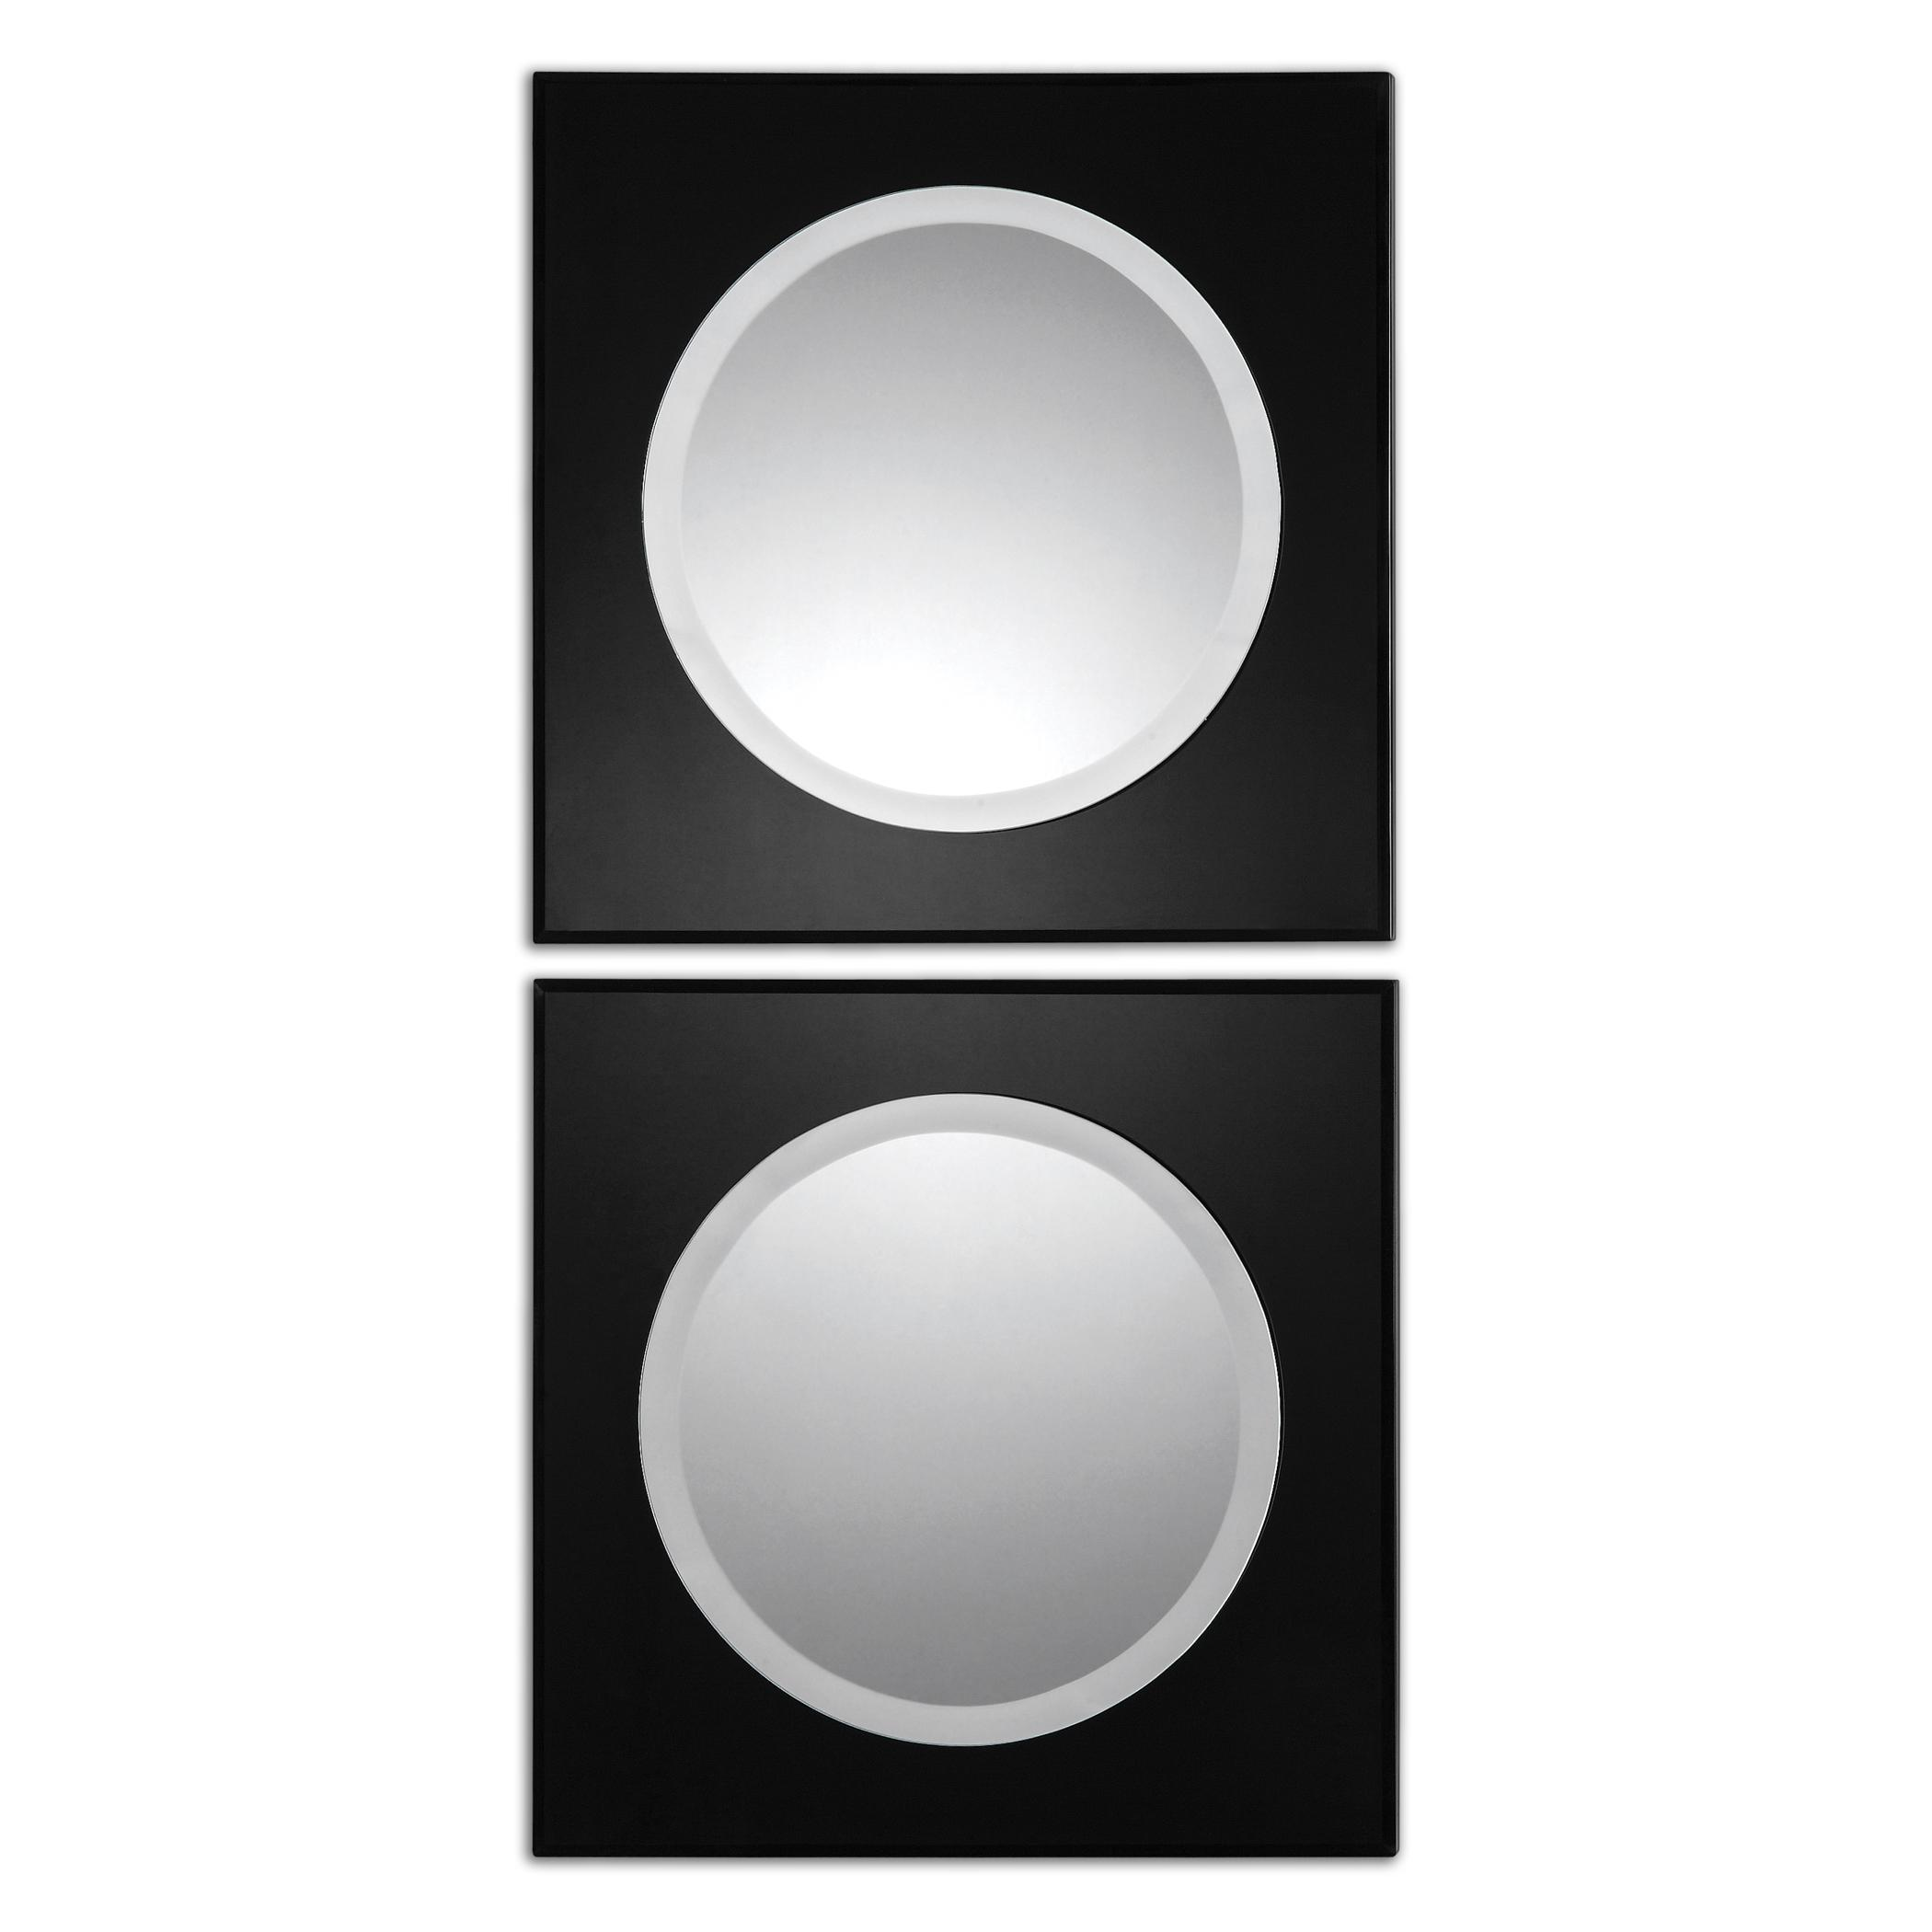 Uttermost Mirrors Girard Black Square Mirrors Set of 2 - Item Number: 08118